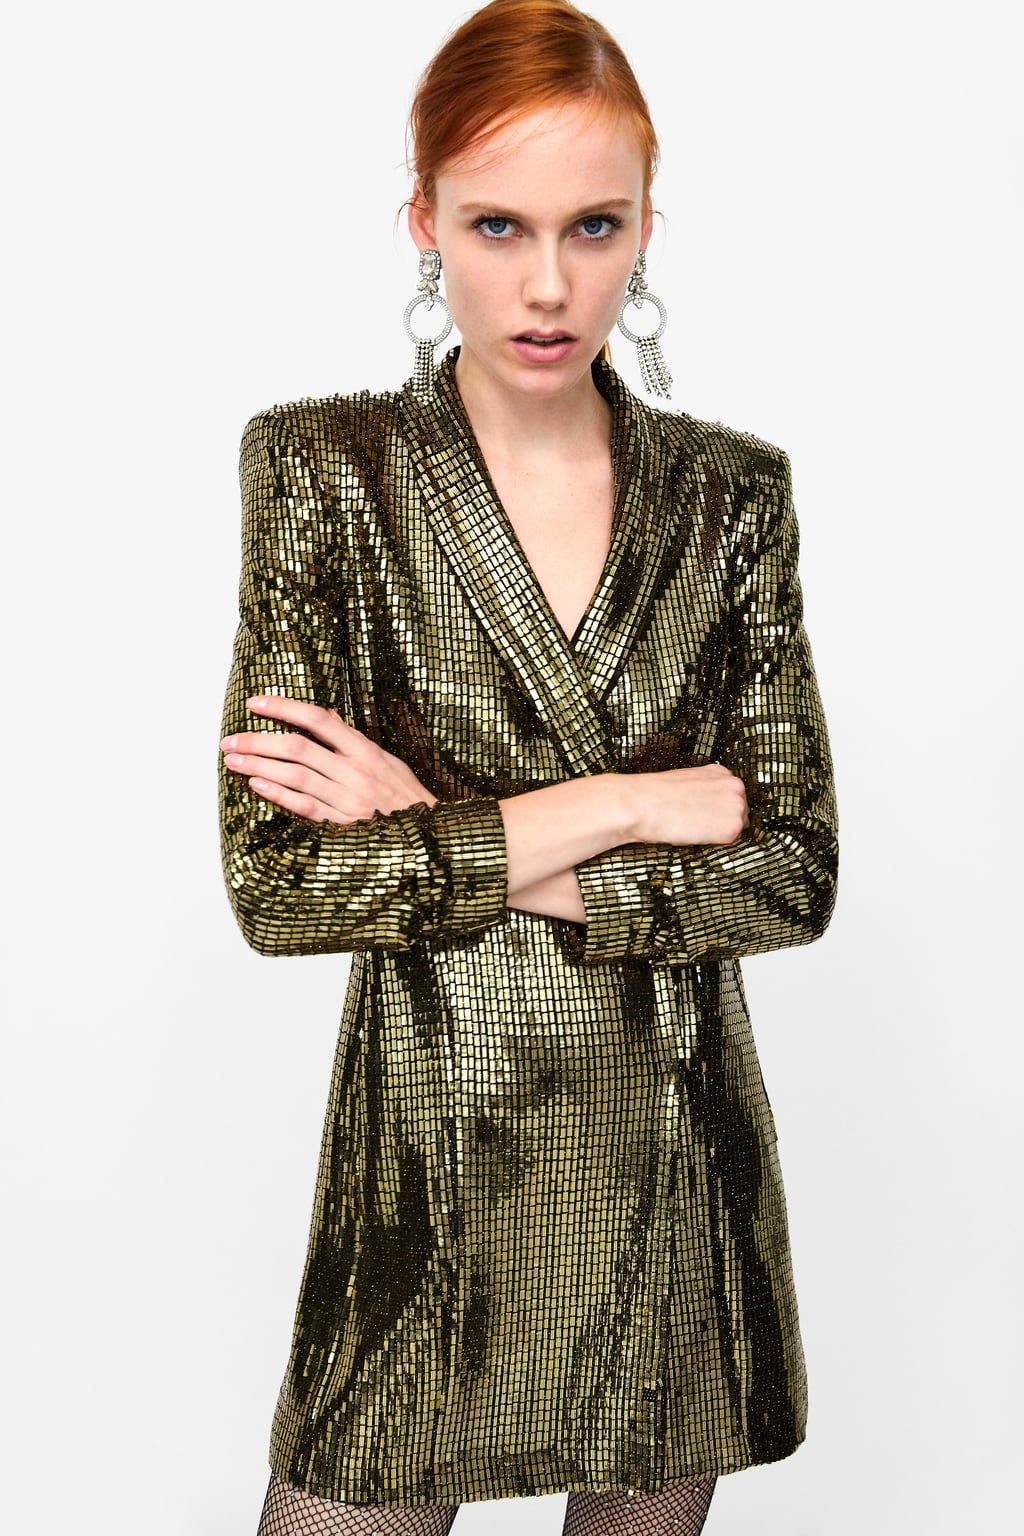 0f0d0edc Blazer dress in 2019 | Paris Art Opening | Sequin dress, Dresses ...